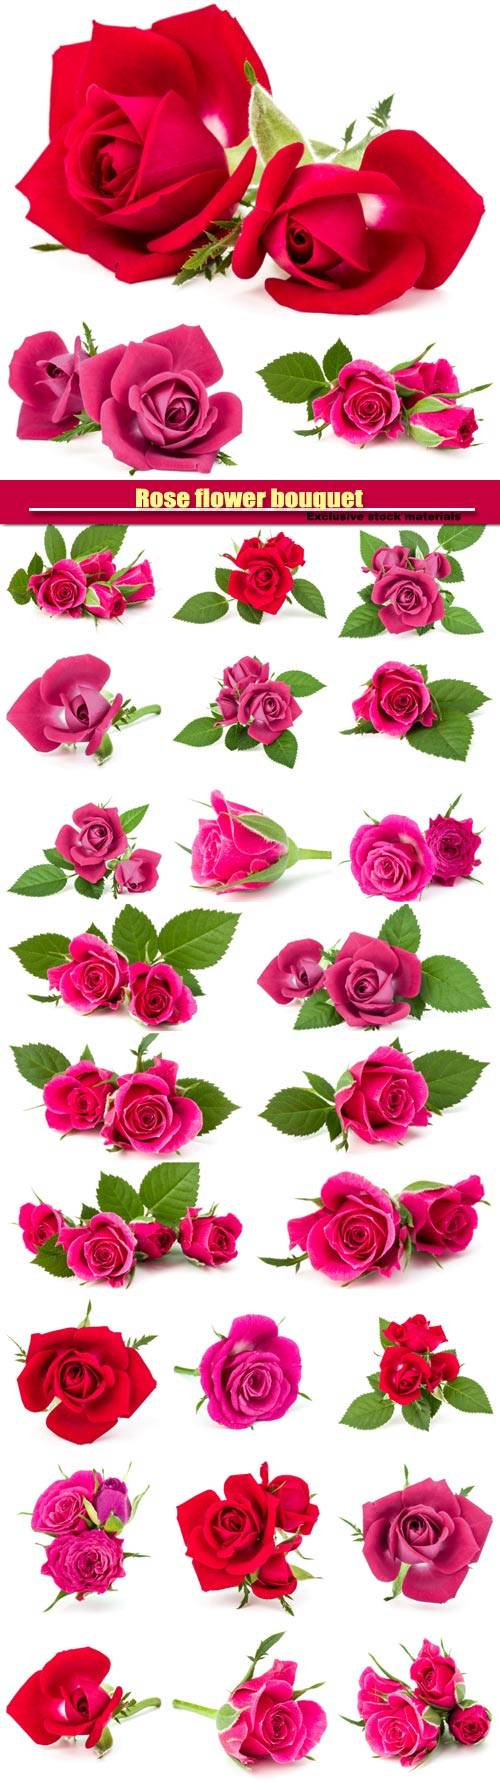 Rose flower bouquet isolated on white background